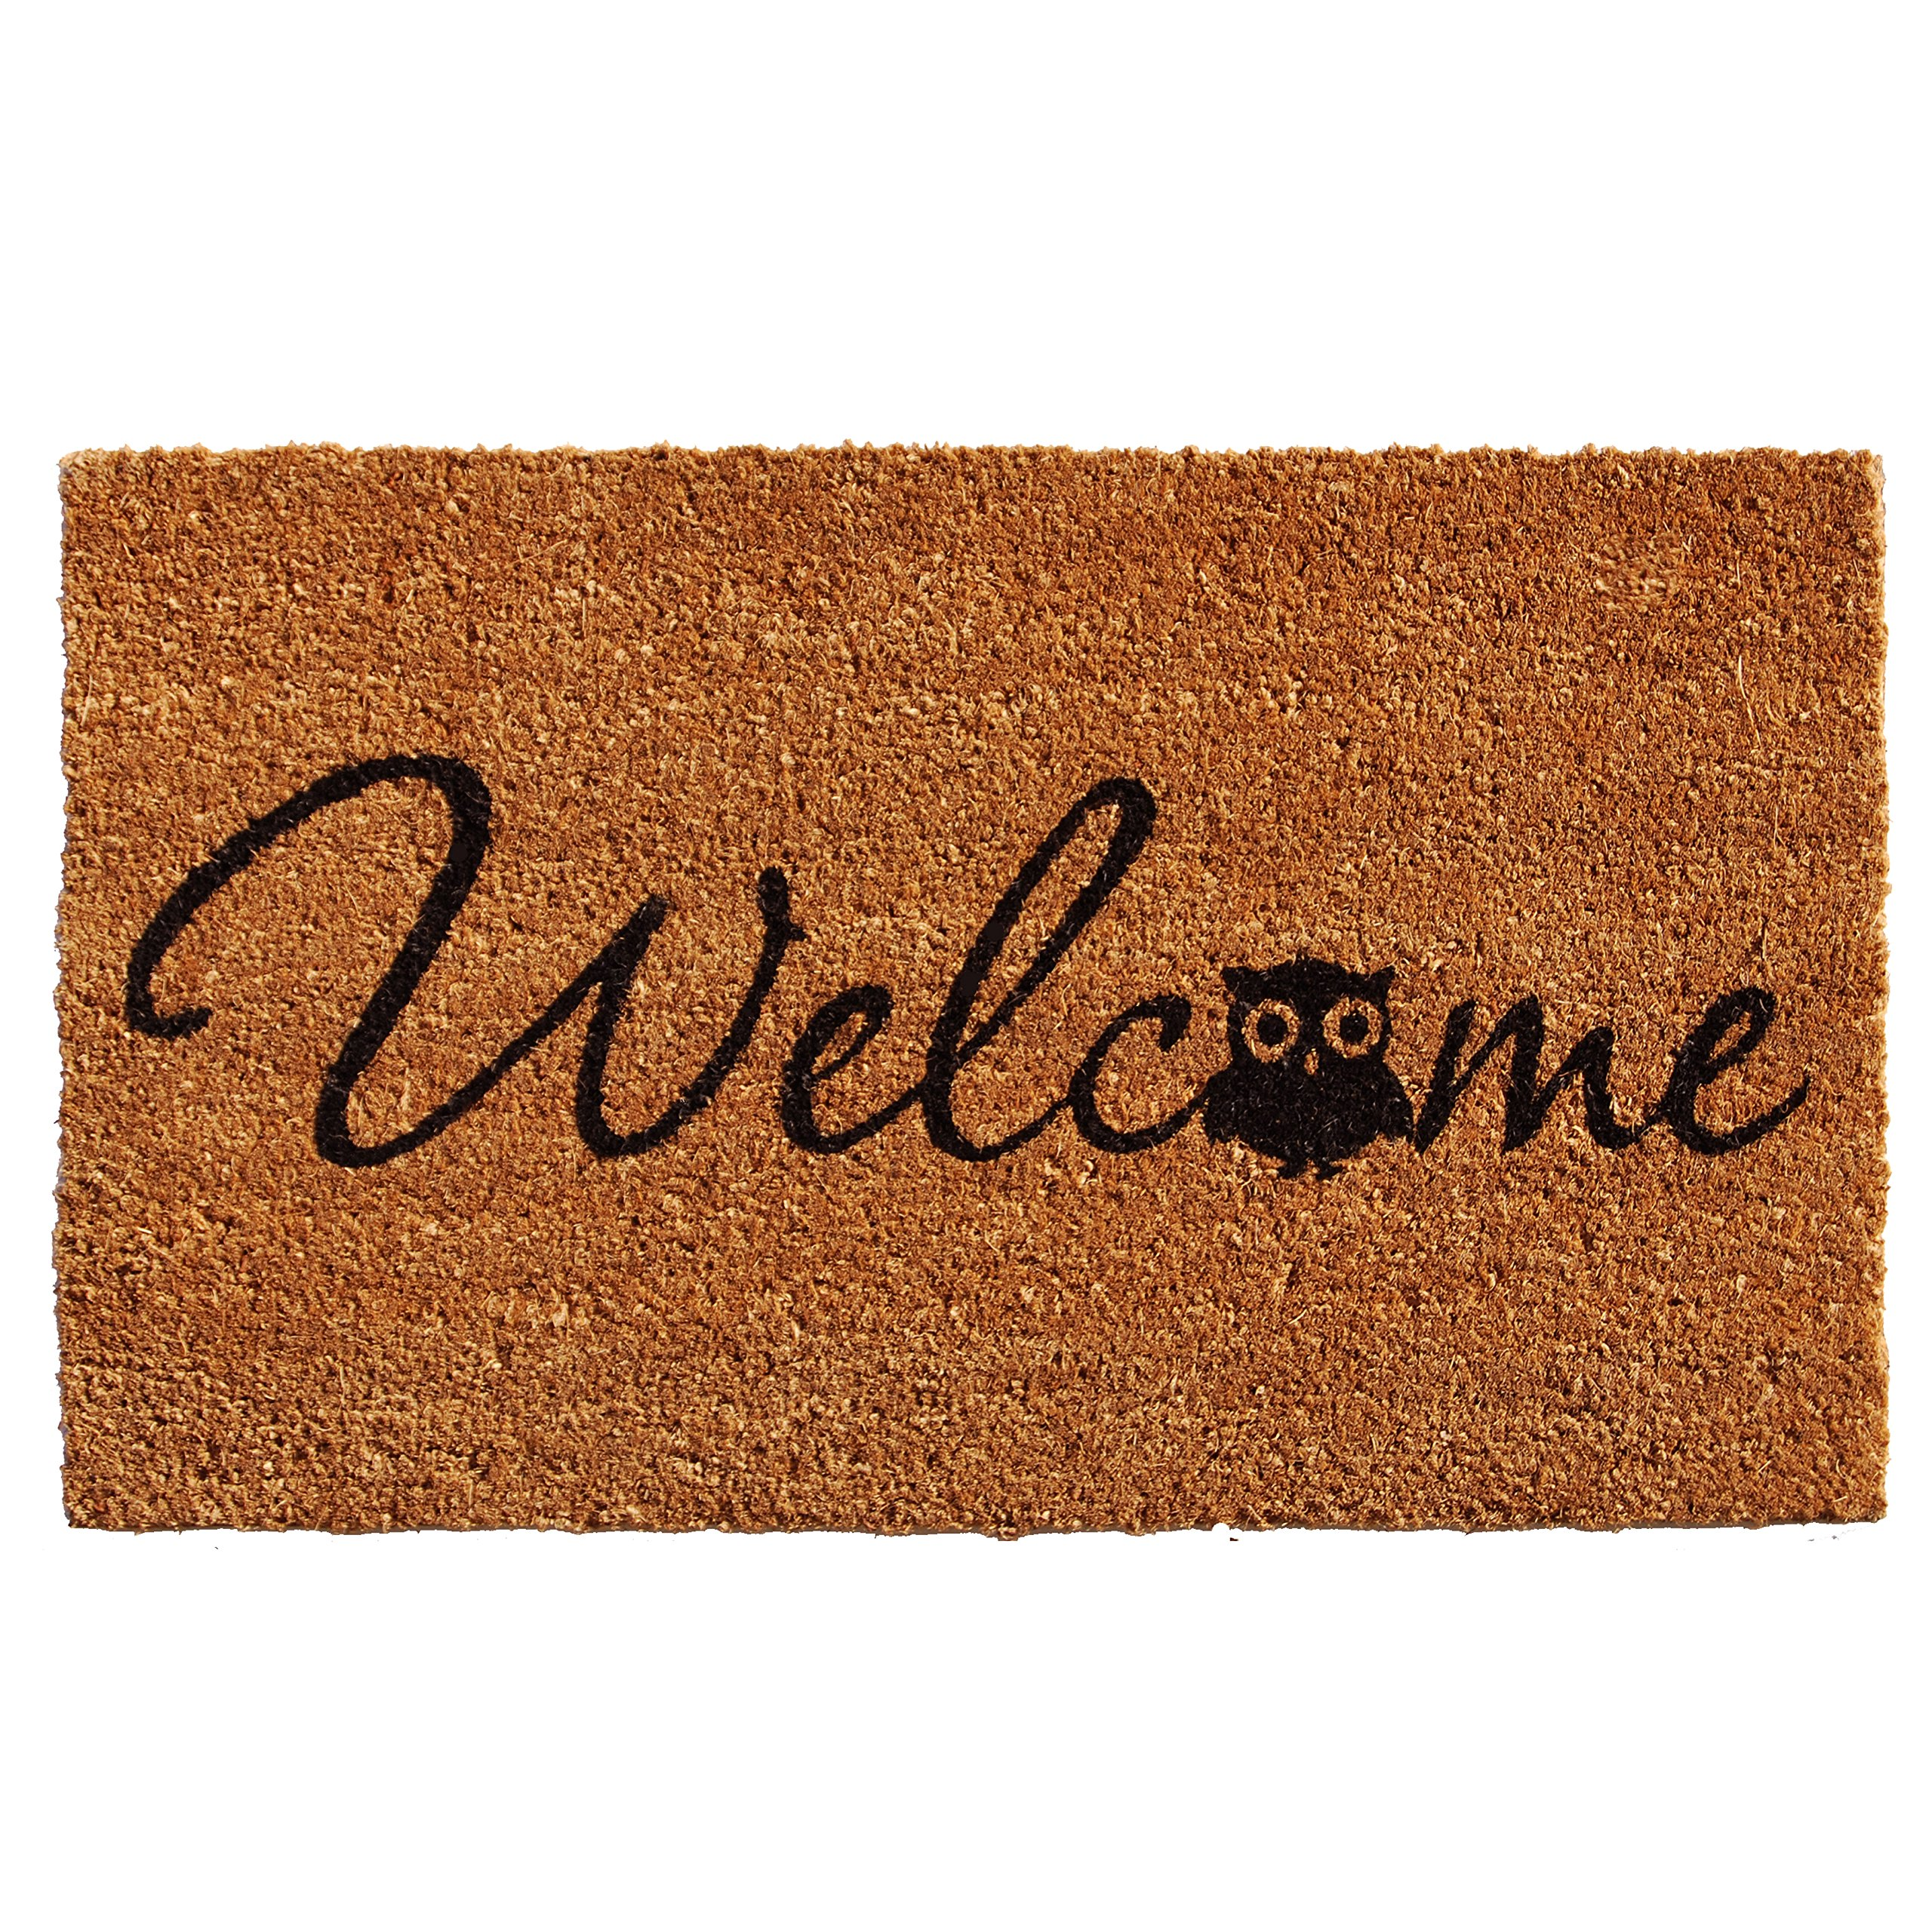 Home & More 121481729 Barn Owl Welcome Doormat, 17'' x 29'' x 0.60'', Natural/Black